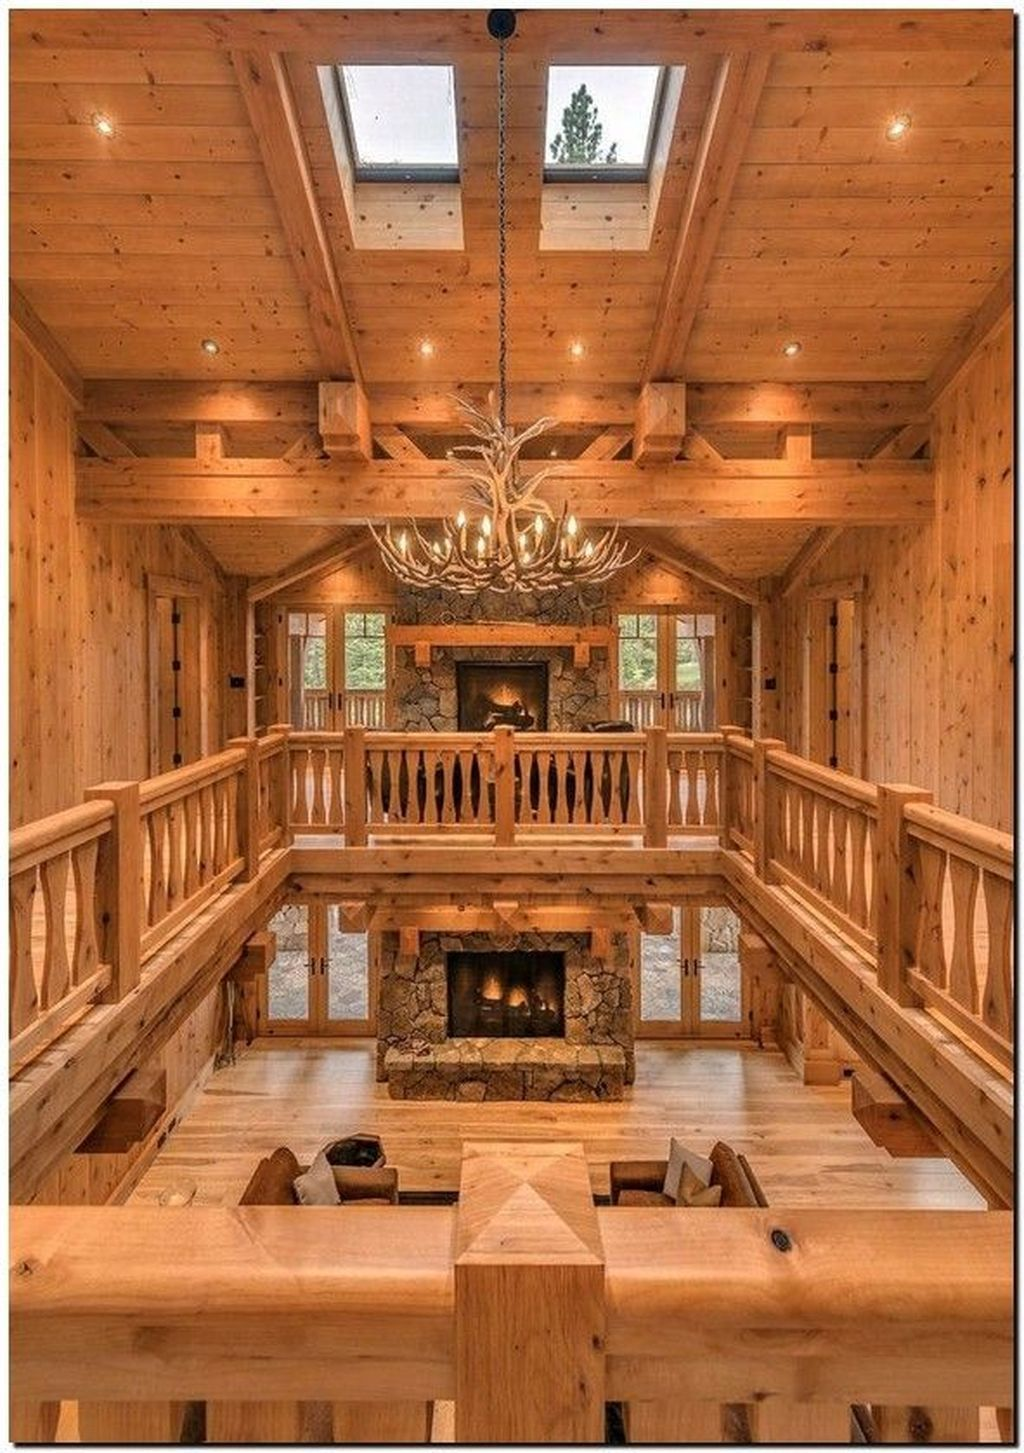 37 Attractive Log Cabin Interior Design Ideas For Tiny House In